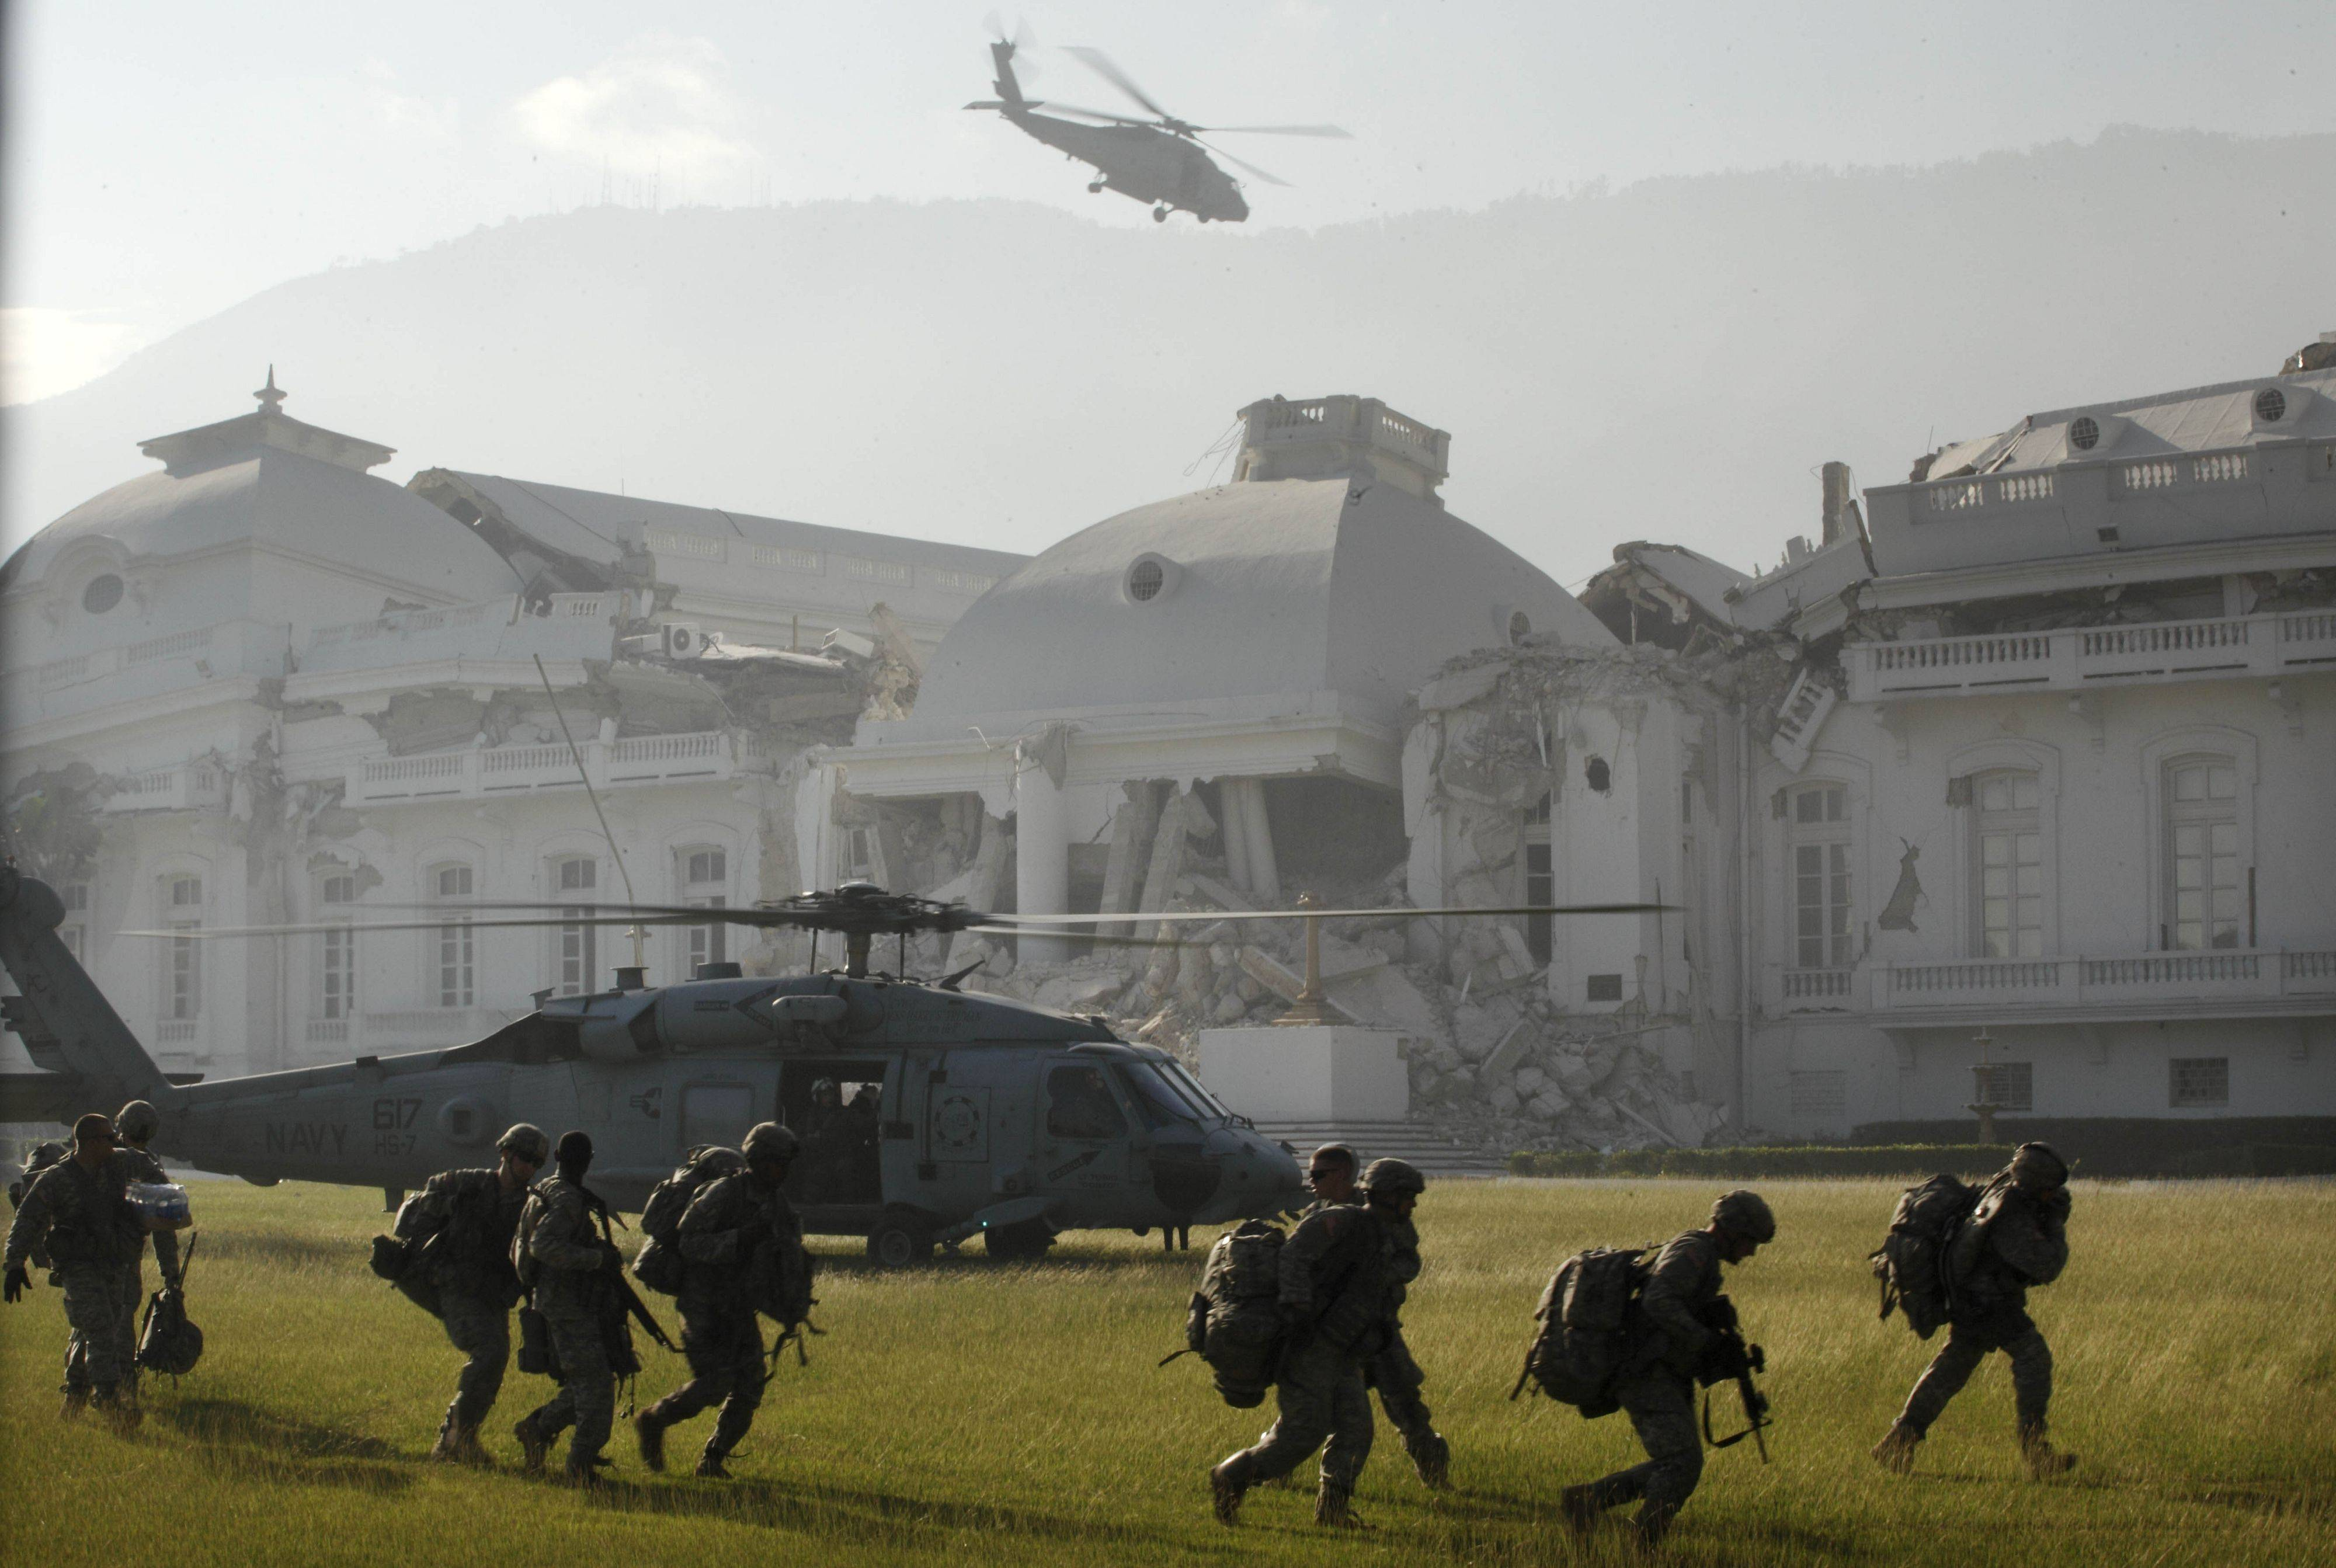 In this Jan. 19, 2010 file photo, a U.S. Navy helicopter takes off in front of the National Palace after members of the U.S. Army 82nd Airborne, front, landed in Port-au-Prince.